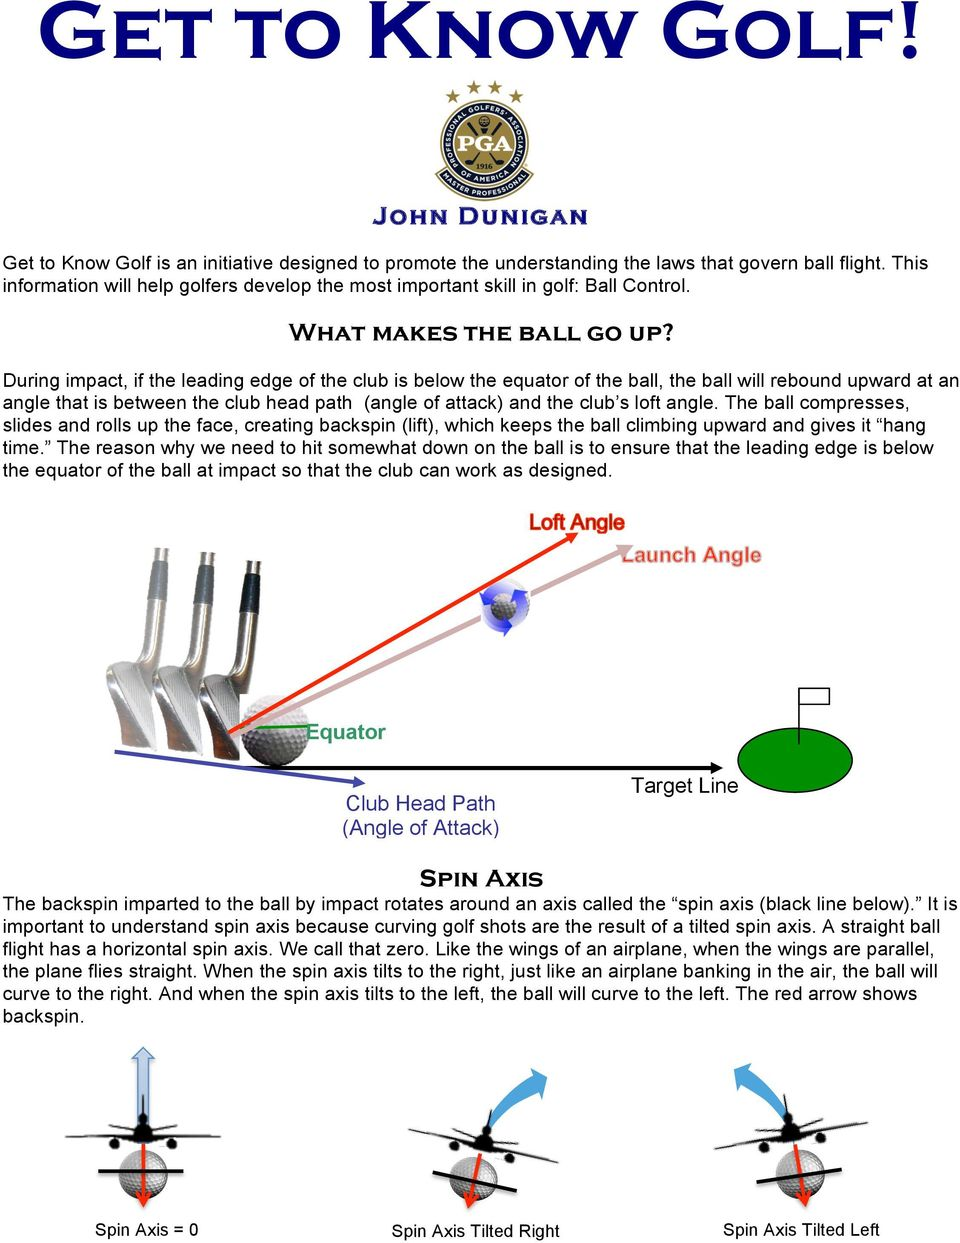 During impact, if the leading edge of the club is below the equator of the ball, the ball will rebound upward at an angle that is between the club head path (angle of attack) and the club s loft